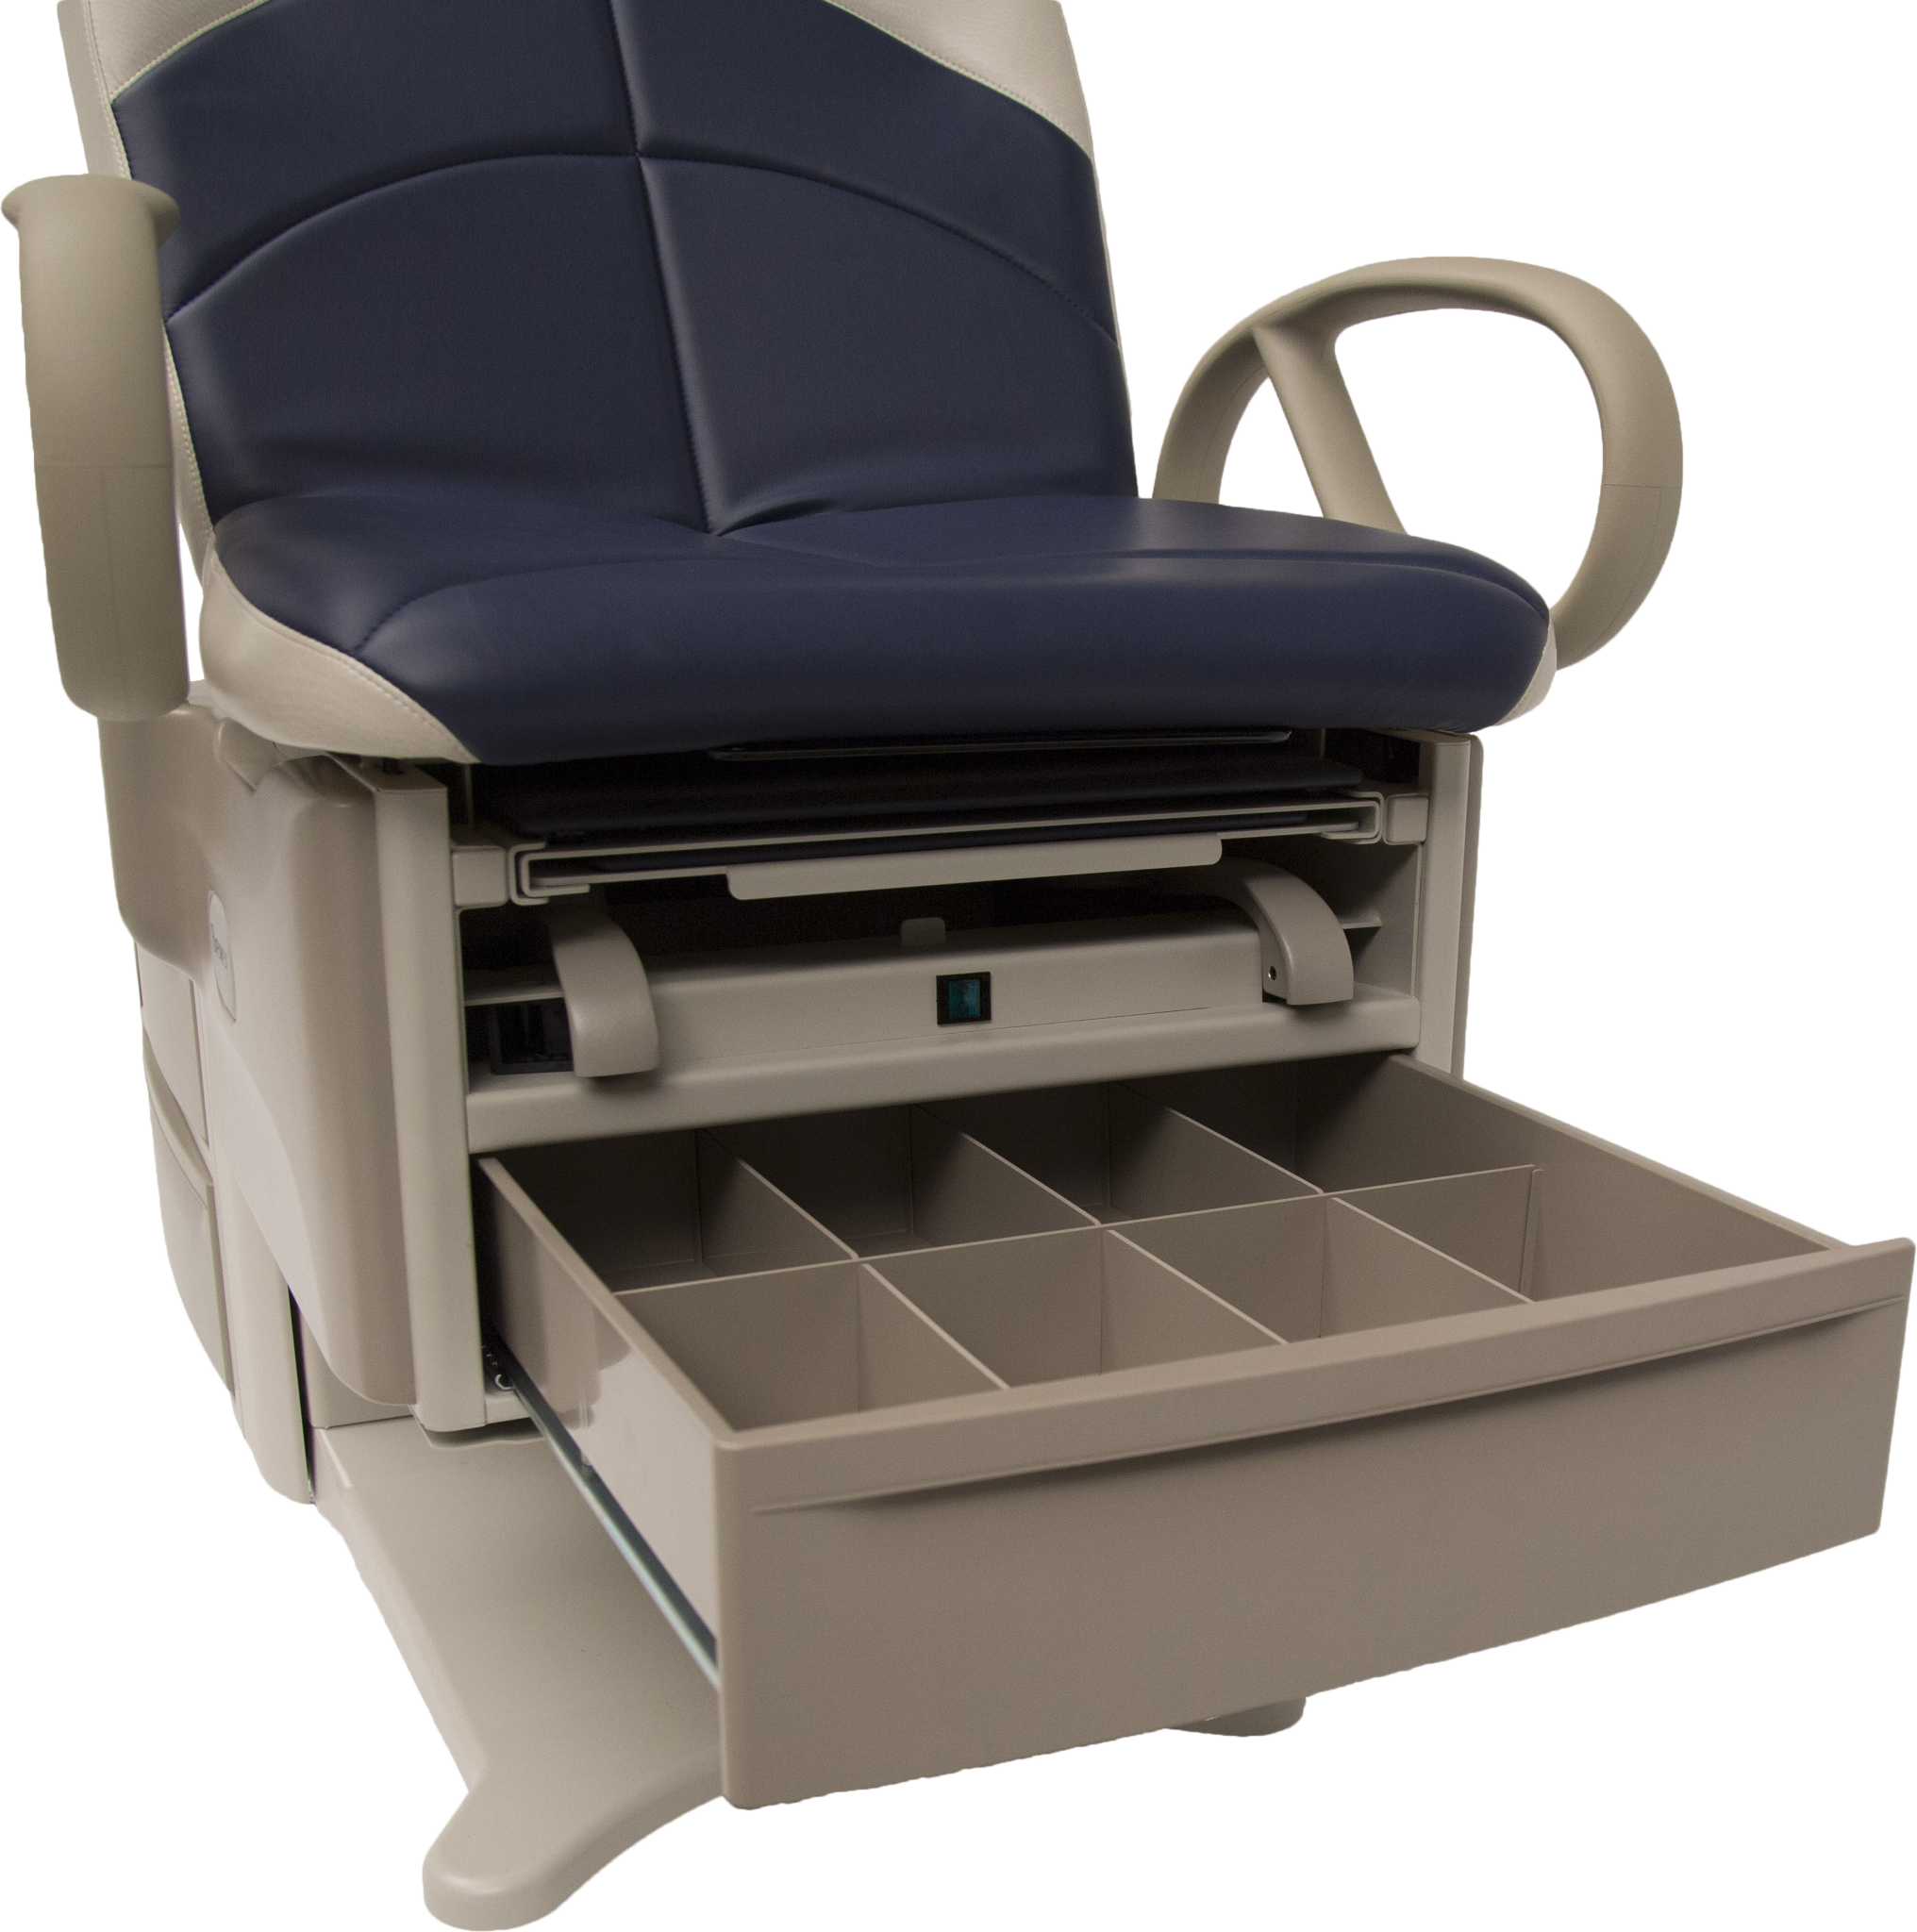 High Low Table Access Highlow Exam Table  Brewer Company. Pull Out Drawer Microwave. Commercial Picnic Table. Small White Computer Desk Uk. Tar Transaction Desk. Roll Up Camping Table. Uab Help Desk. Iron Drawer Knobs. Traction Tables For Back Pain